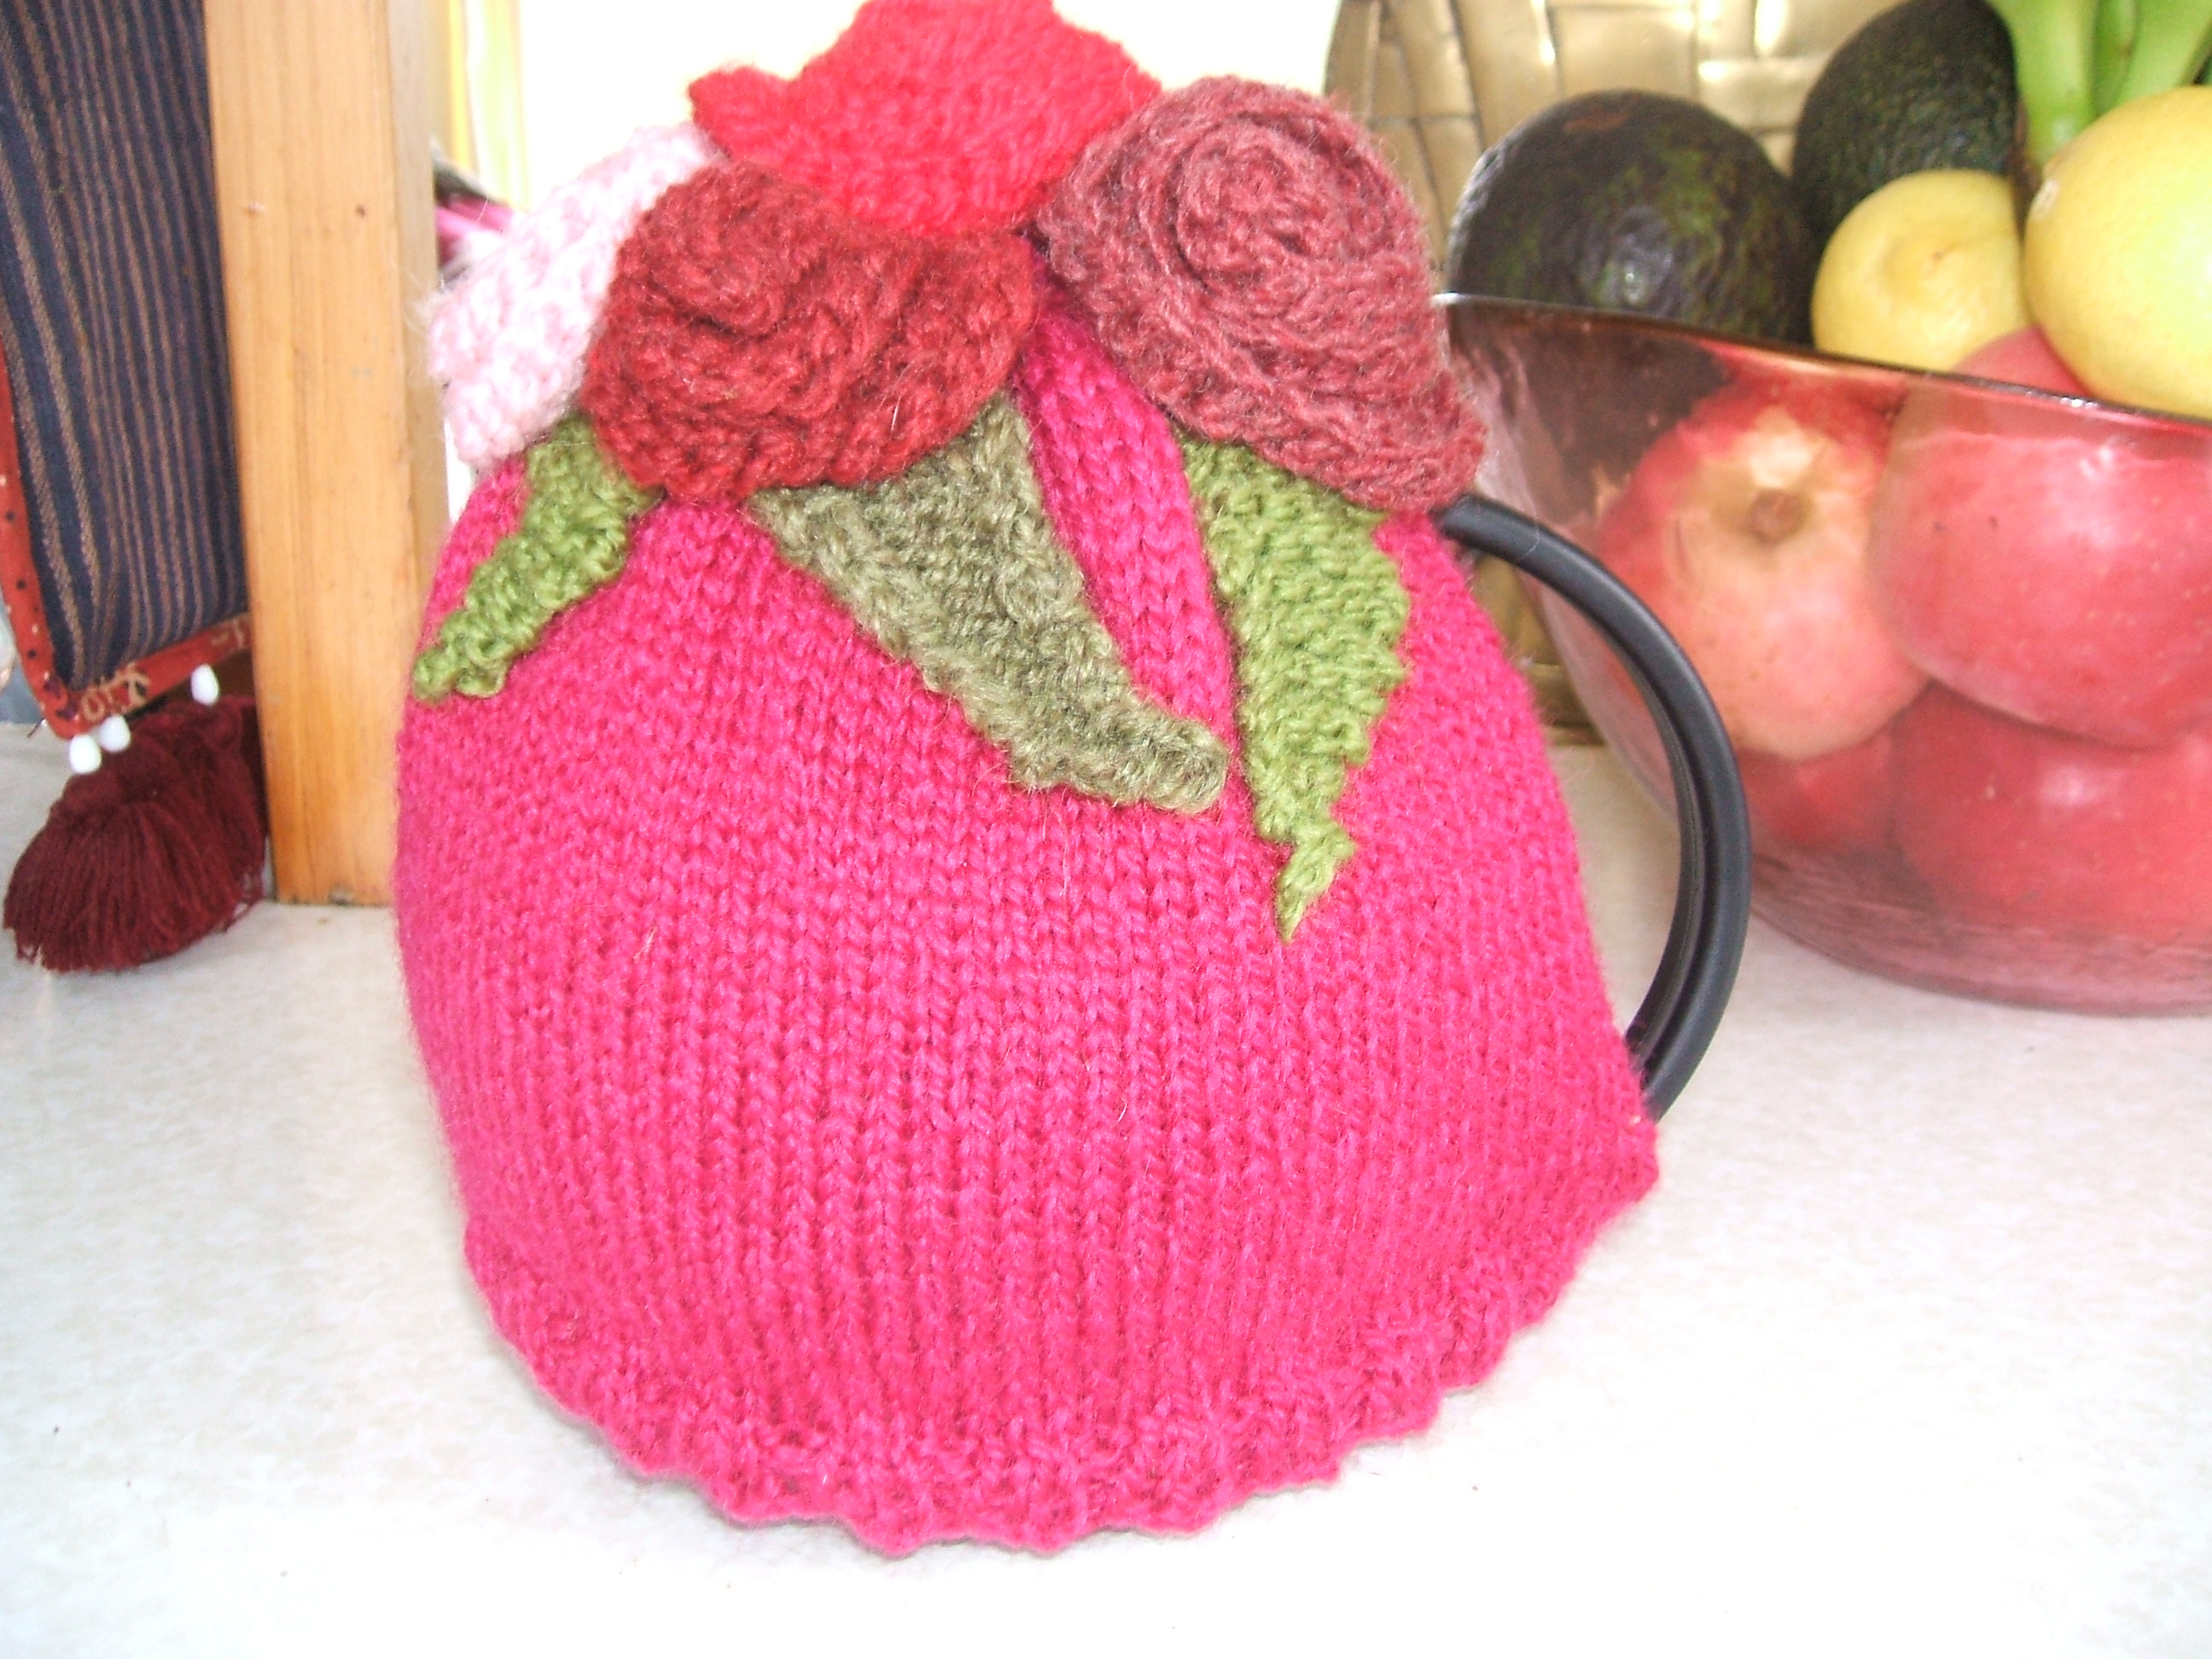 Tea Cosy Knitting Patterns Easy Crochet Tea Cosy Patterns Patterns Gallery